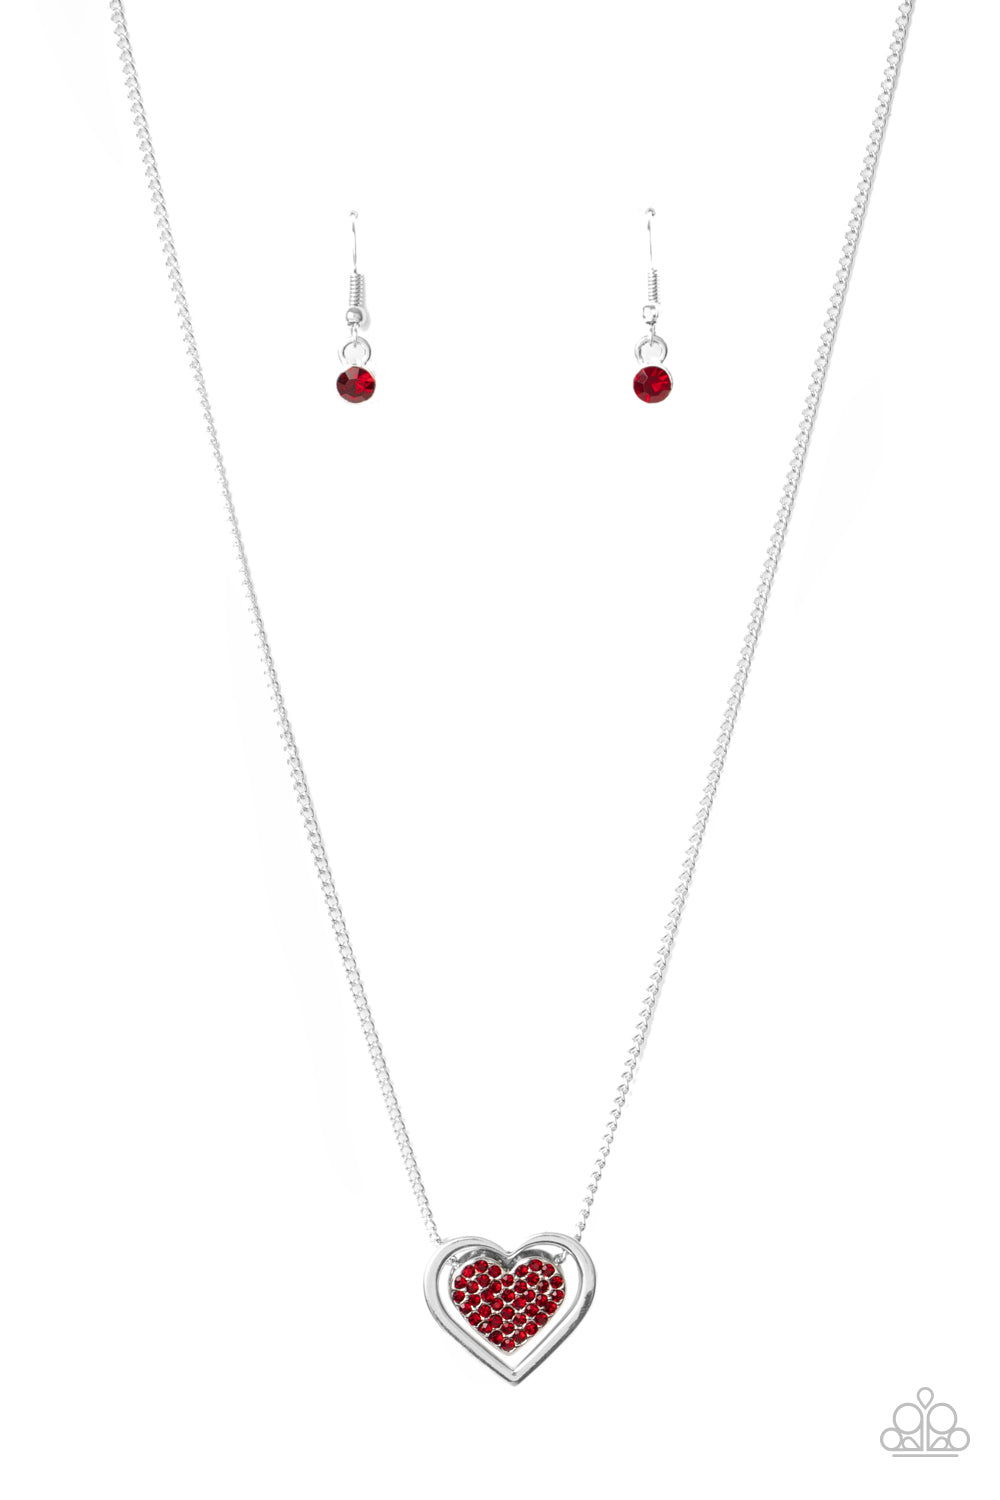 Paparazzi Game, Set, MATCHMAKER - Red Necklace R-01